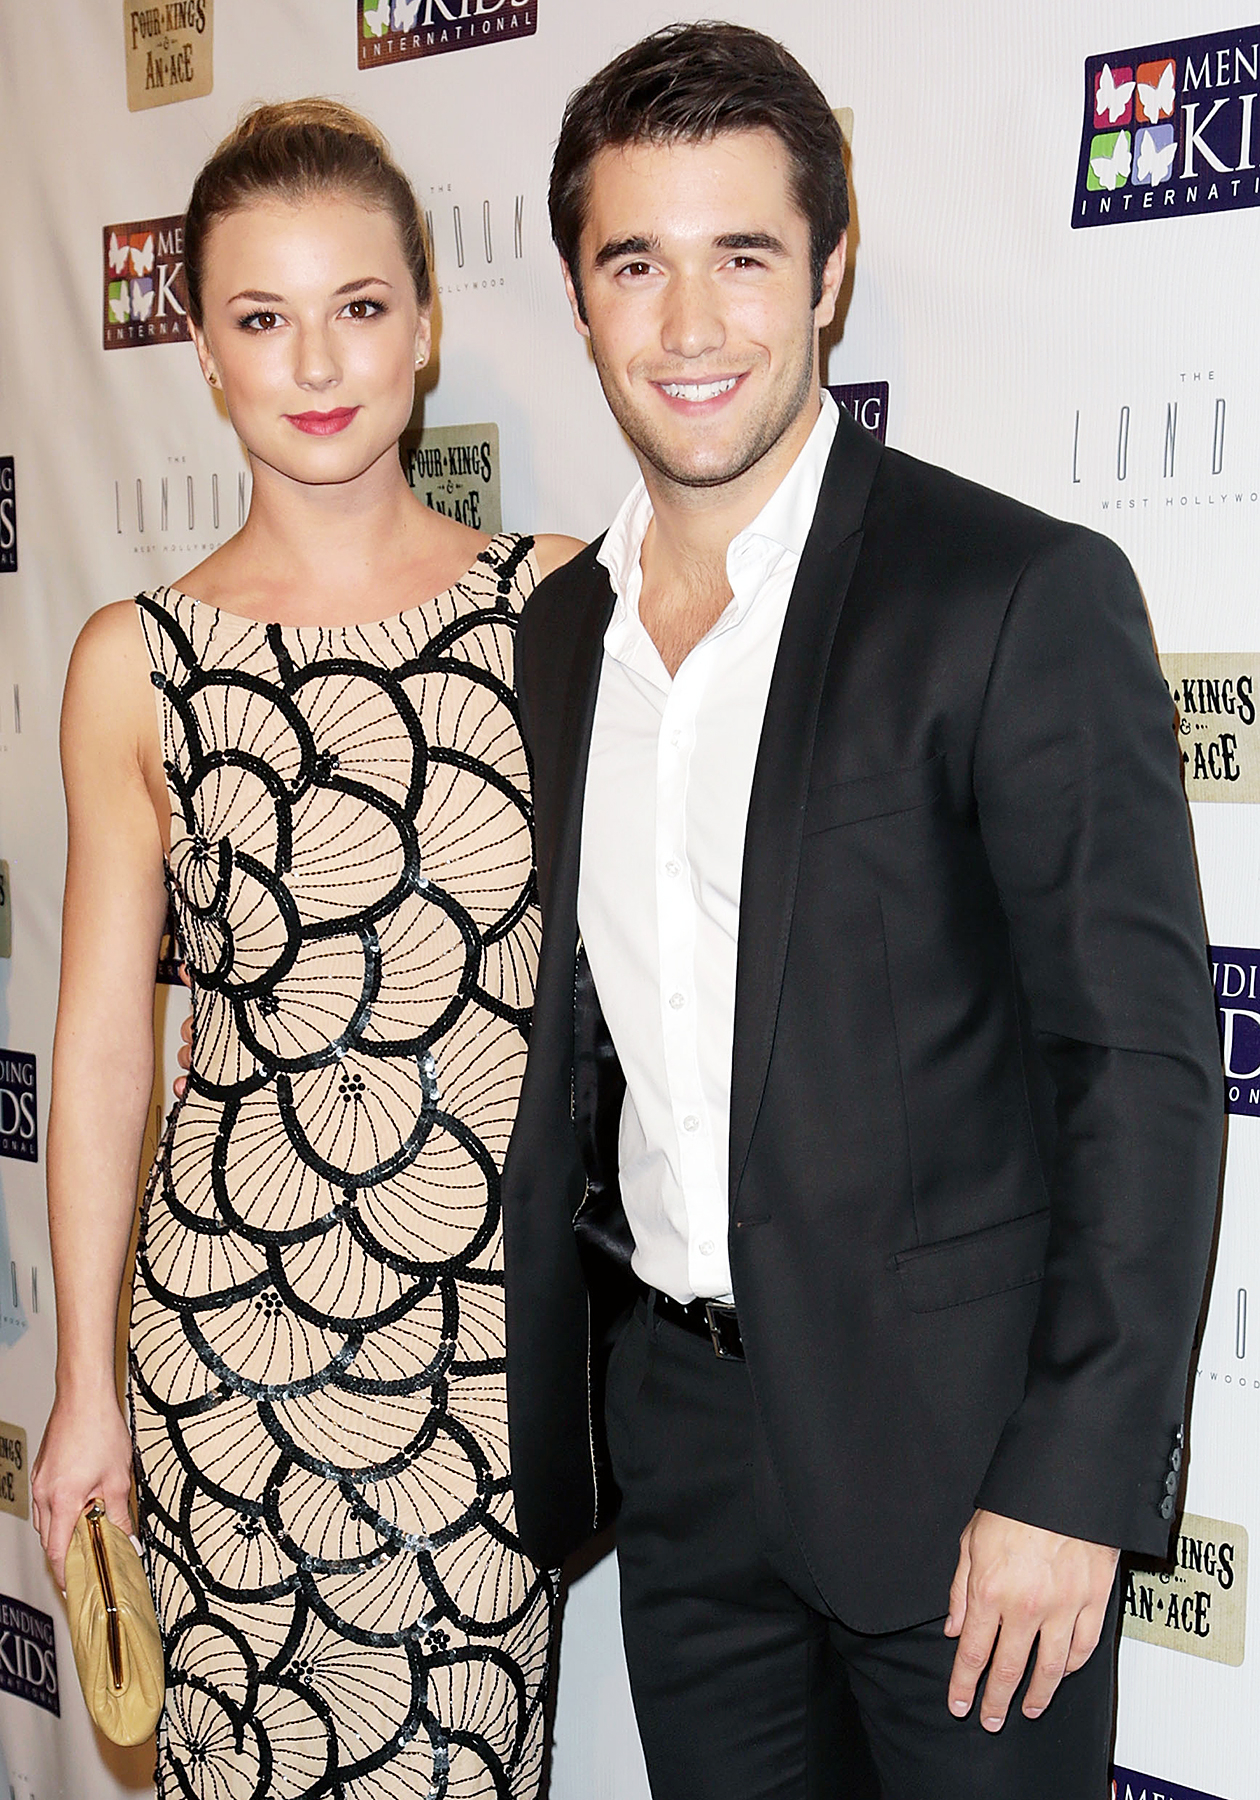 Emily VanCamp Engaged to 'Revenge' Costar Josh Bowman